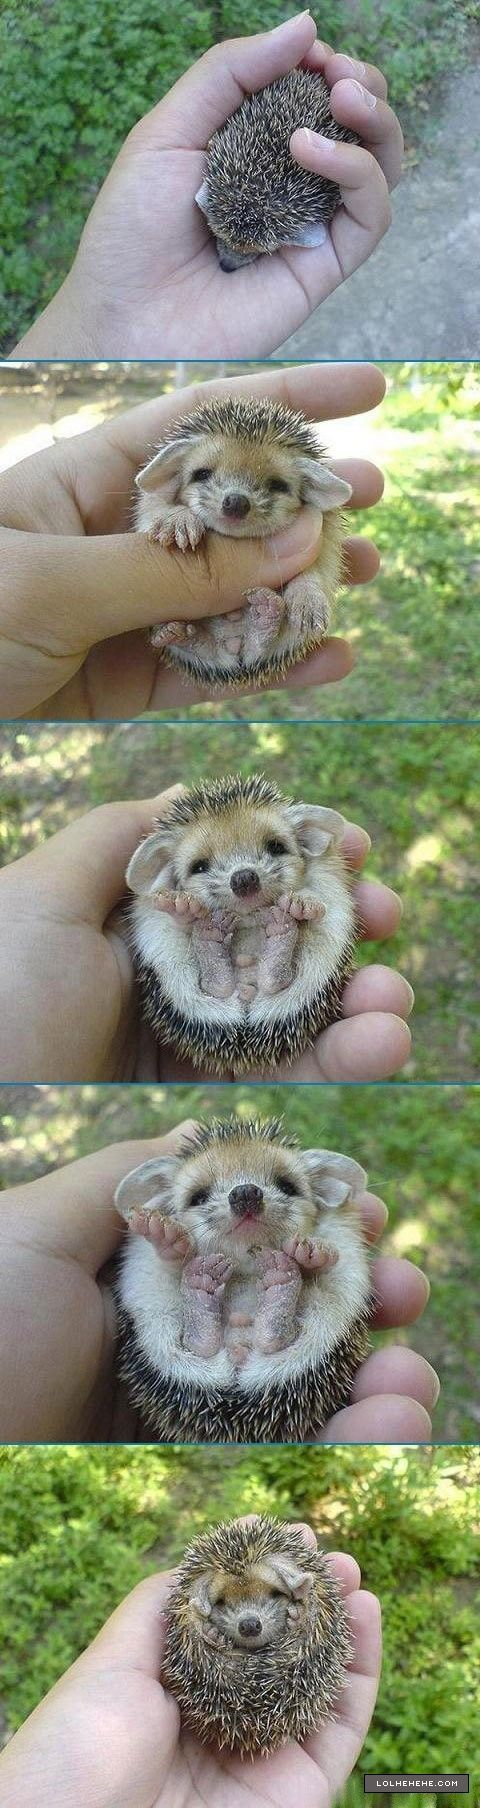 hedgehog cuteness!